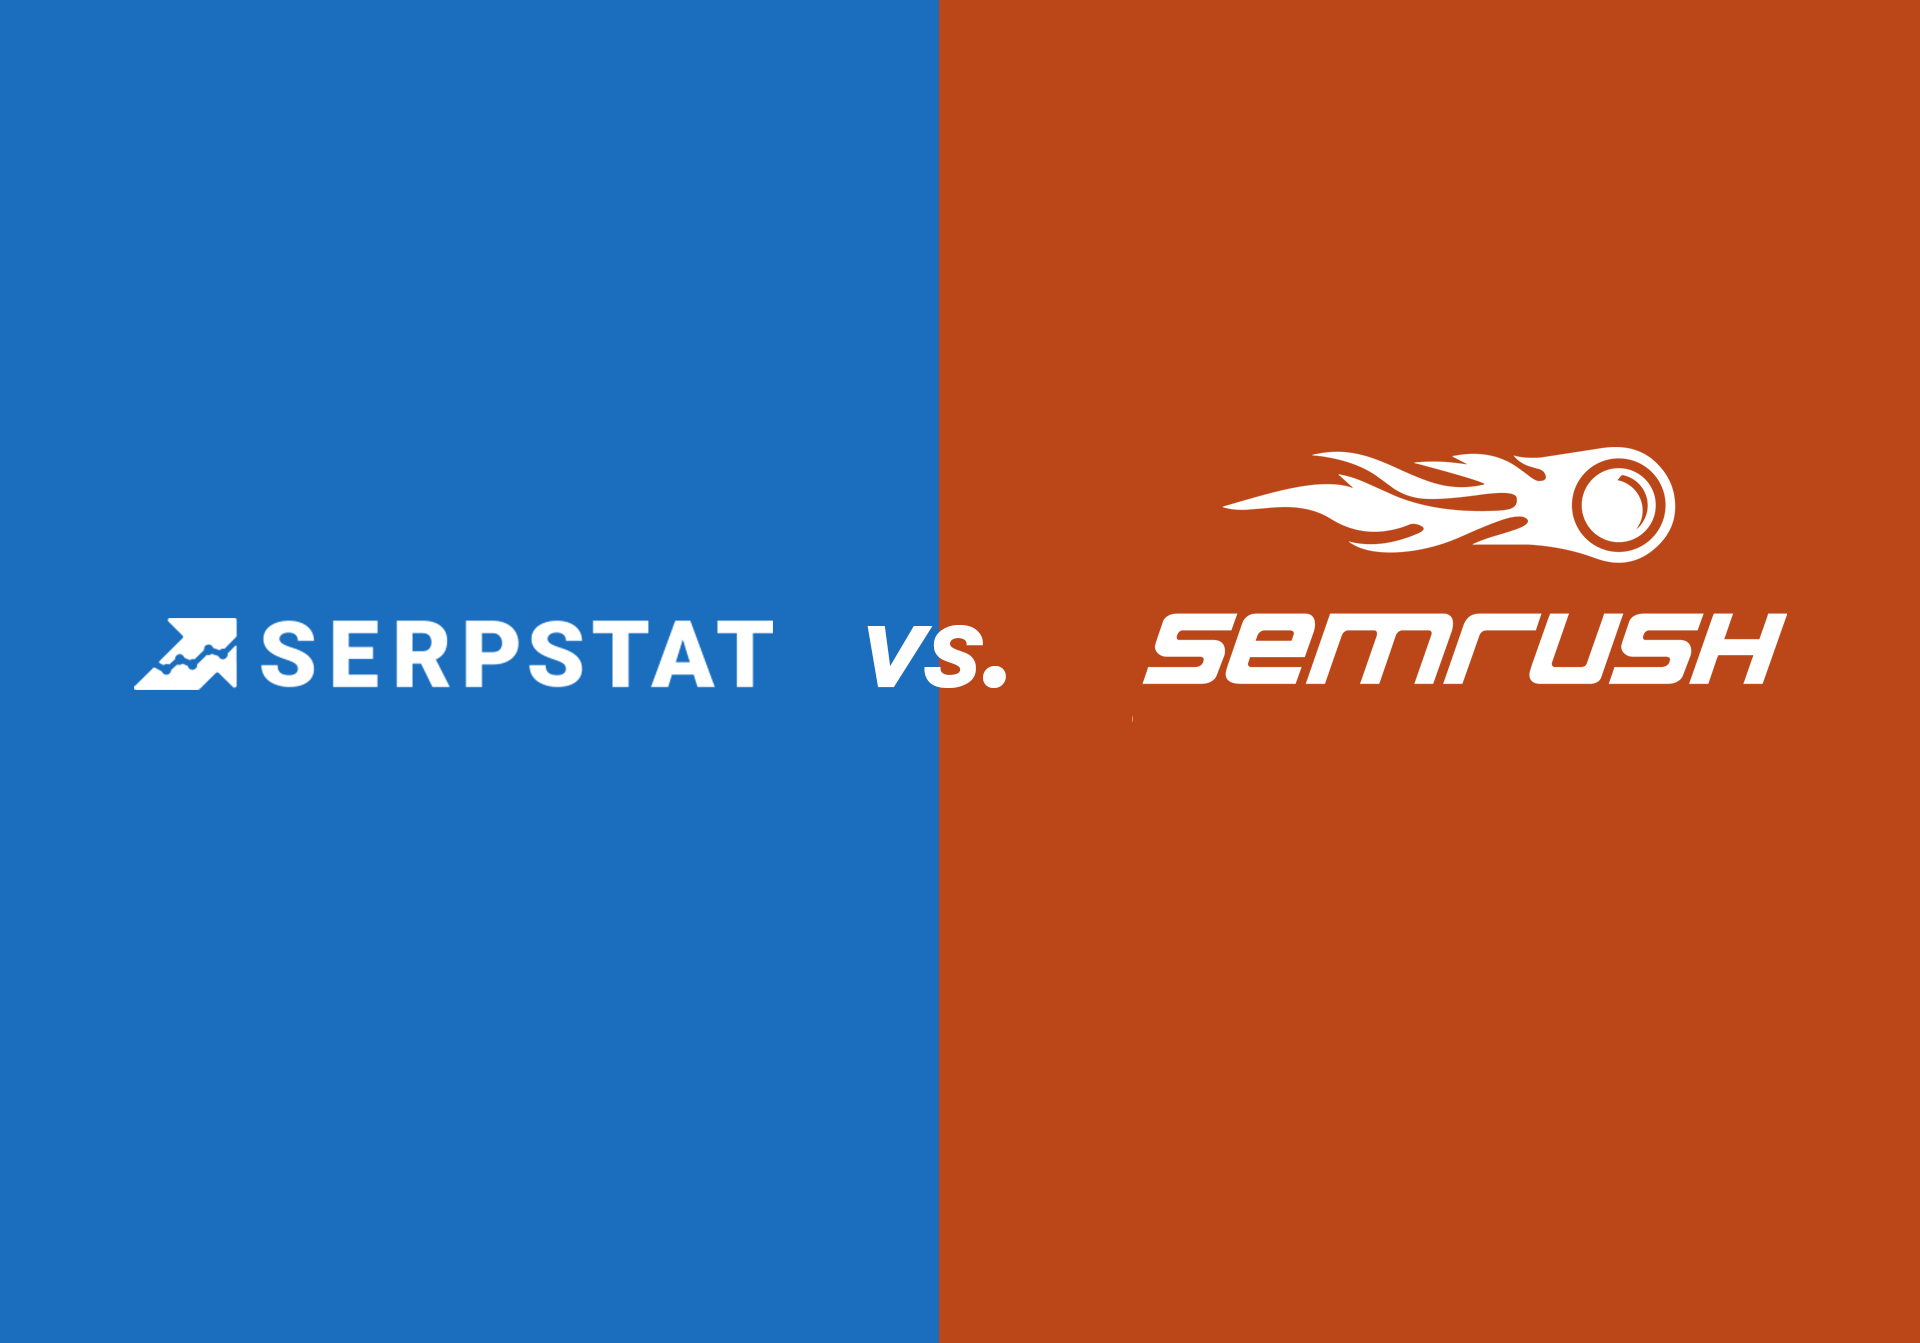 Discount Voucher For Renewal Semrush April 2020